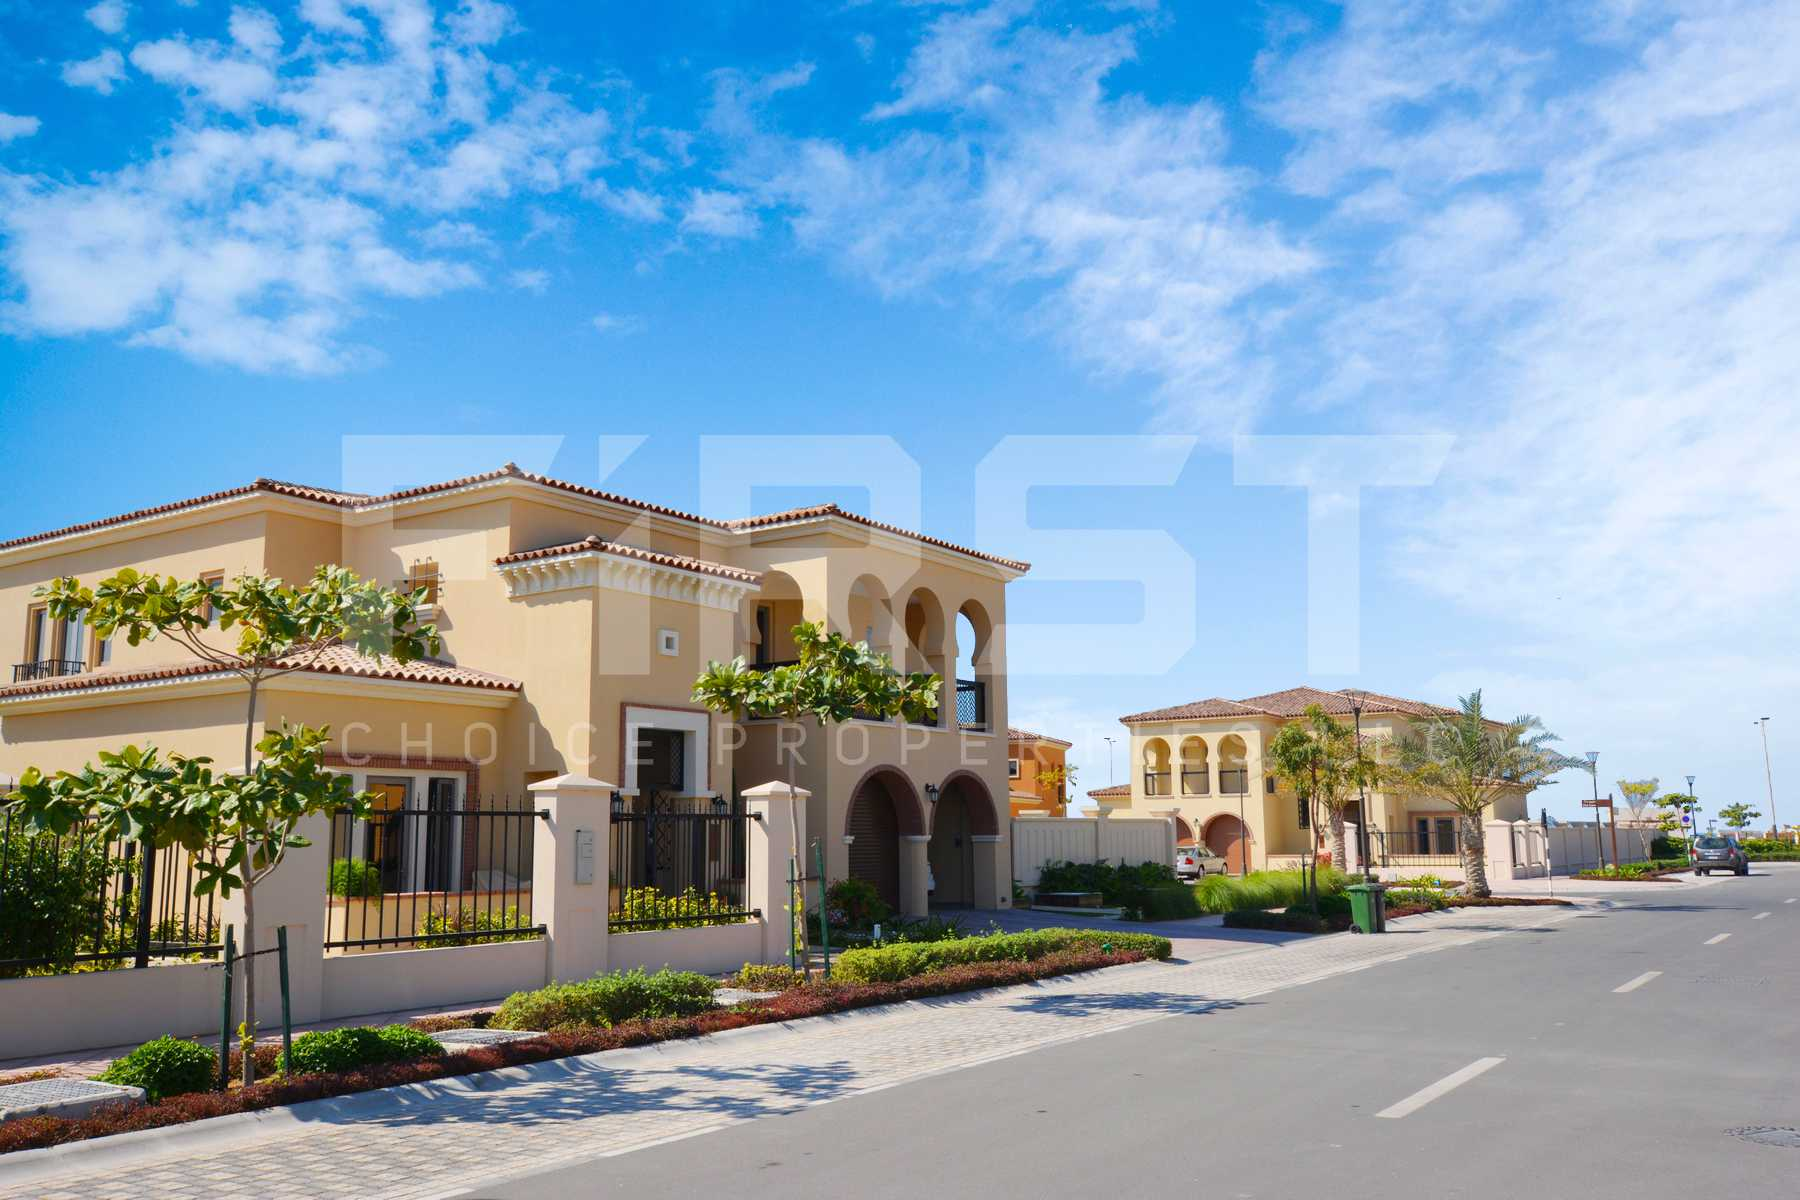 External Photo of 4 Bedroom Villa in Saadiyat Beach Villas Saadiyat Island Abu Dhabi UAE (8).jpg